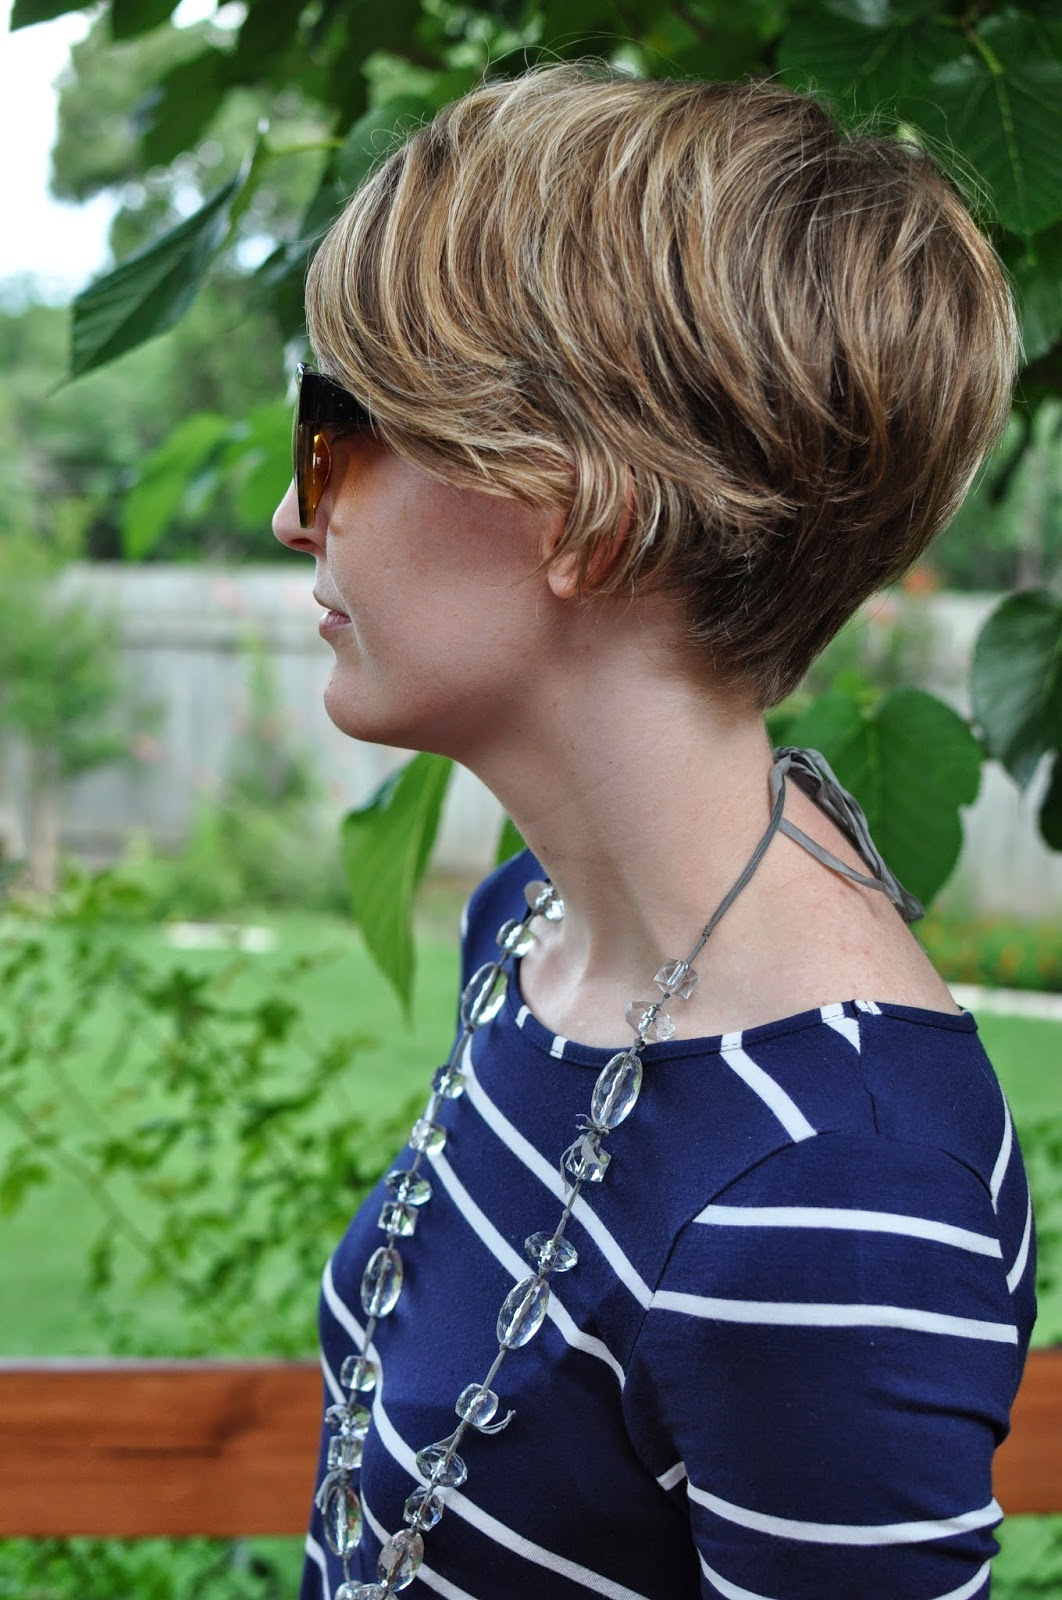 Short hair style - Waterstone Salon - Austin, TX